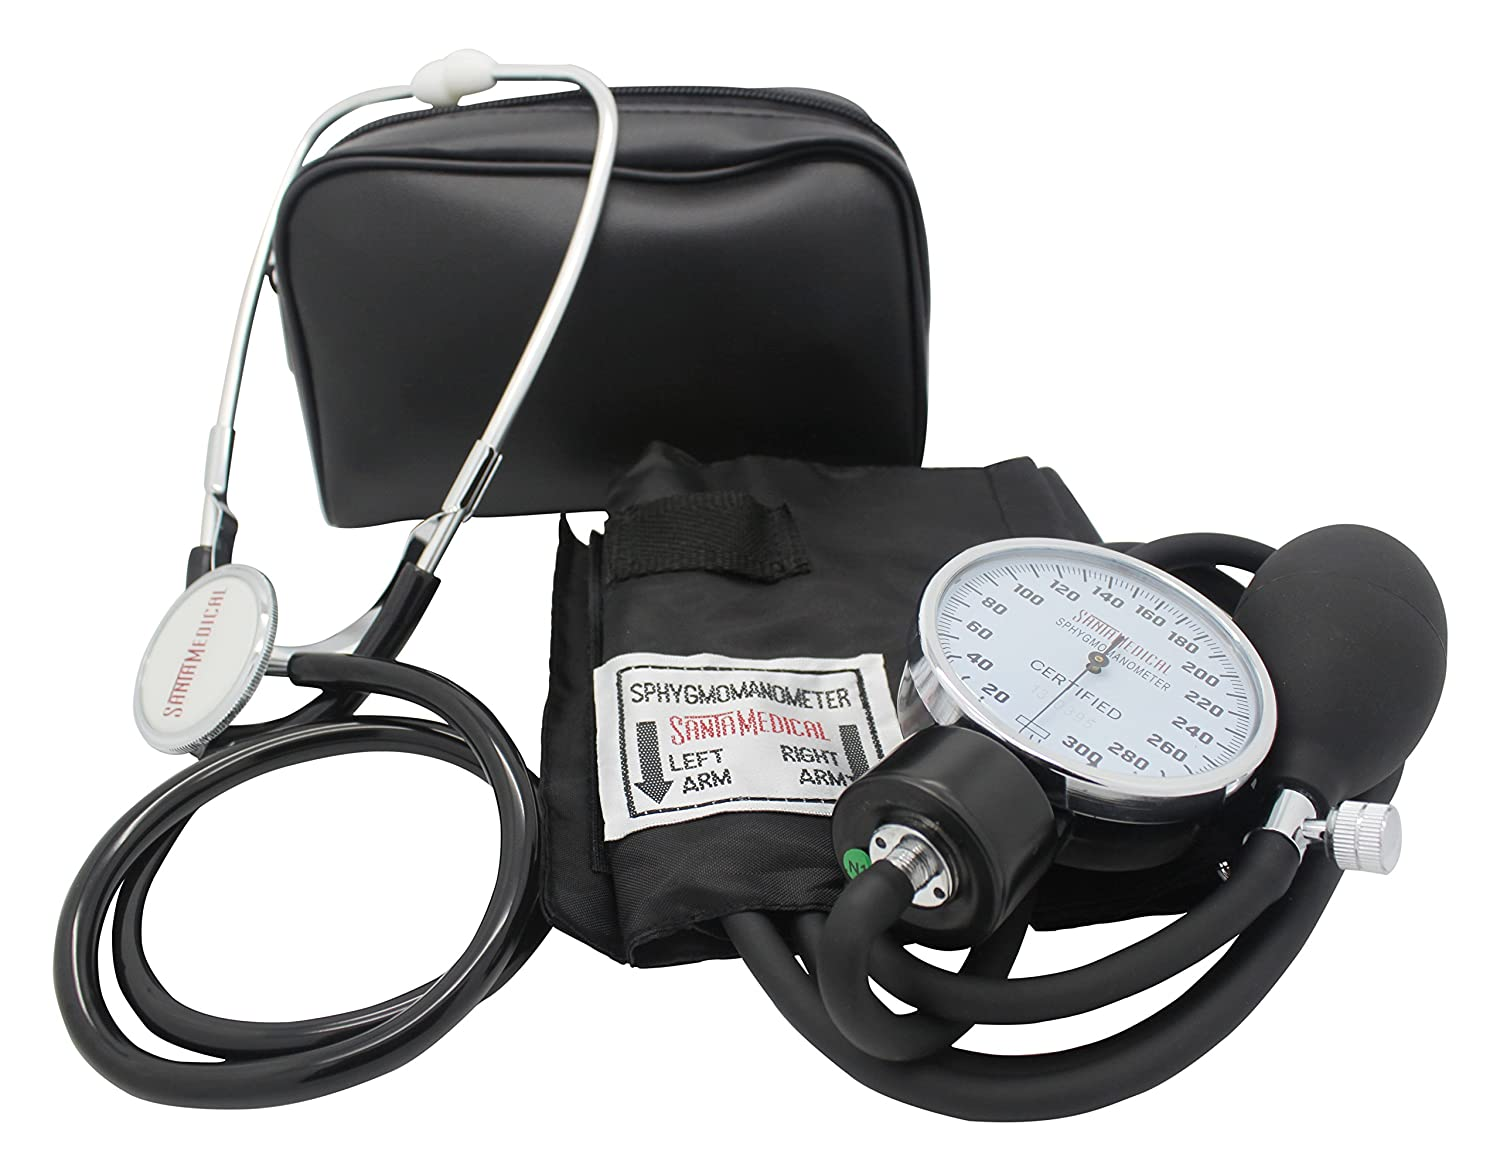 sphygmomanometer. amazon.com: santamedical adult deluxe aneroid sphygmomanometer with stethoscope, cuff and carrying case: health \u0026 personal care y